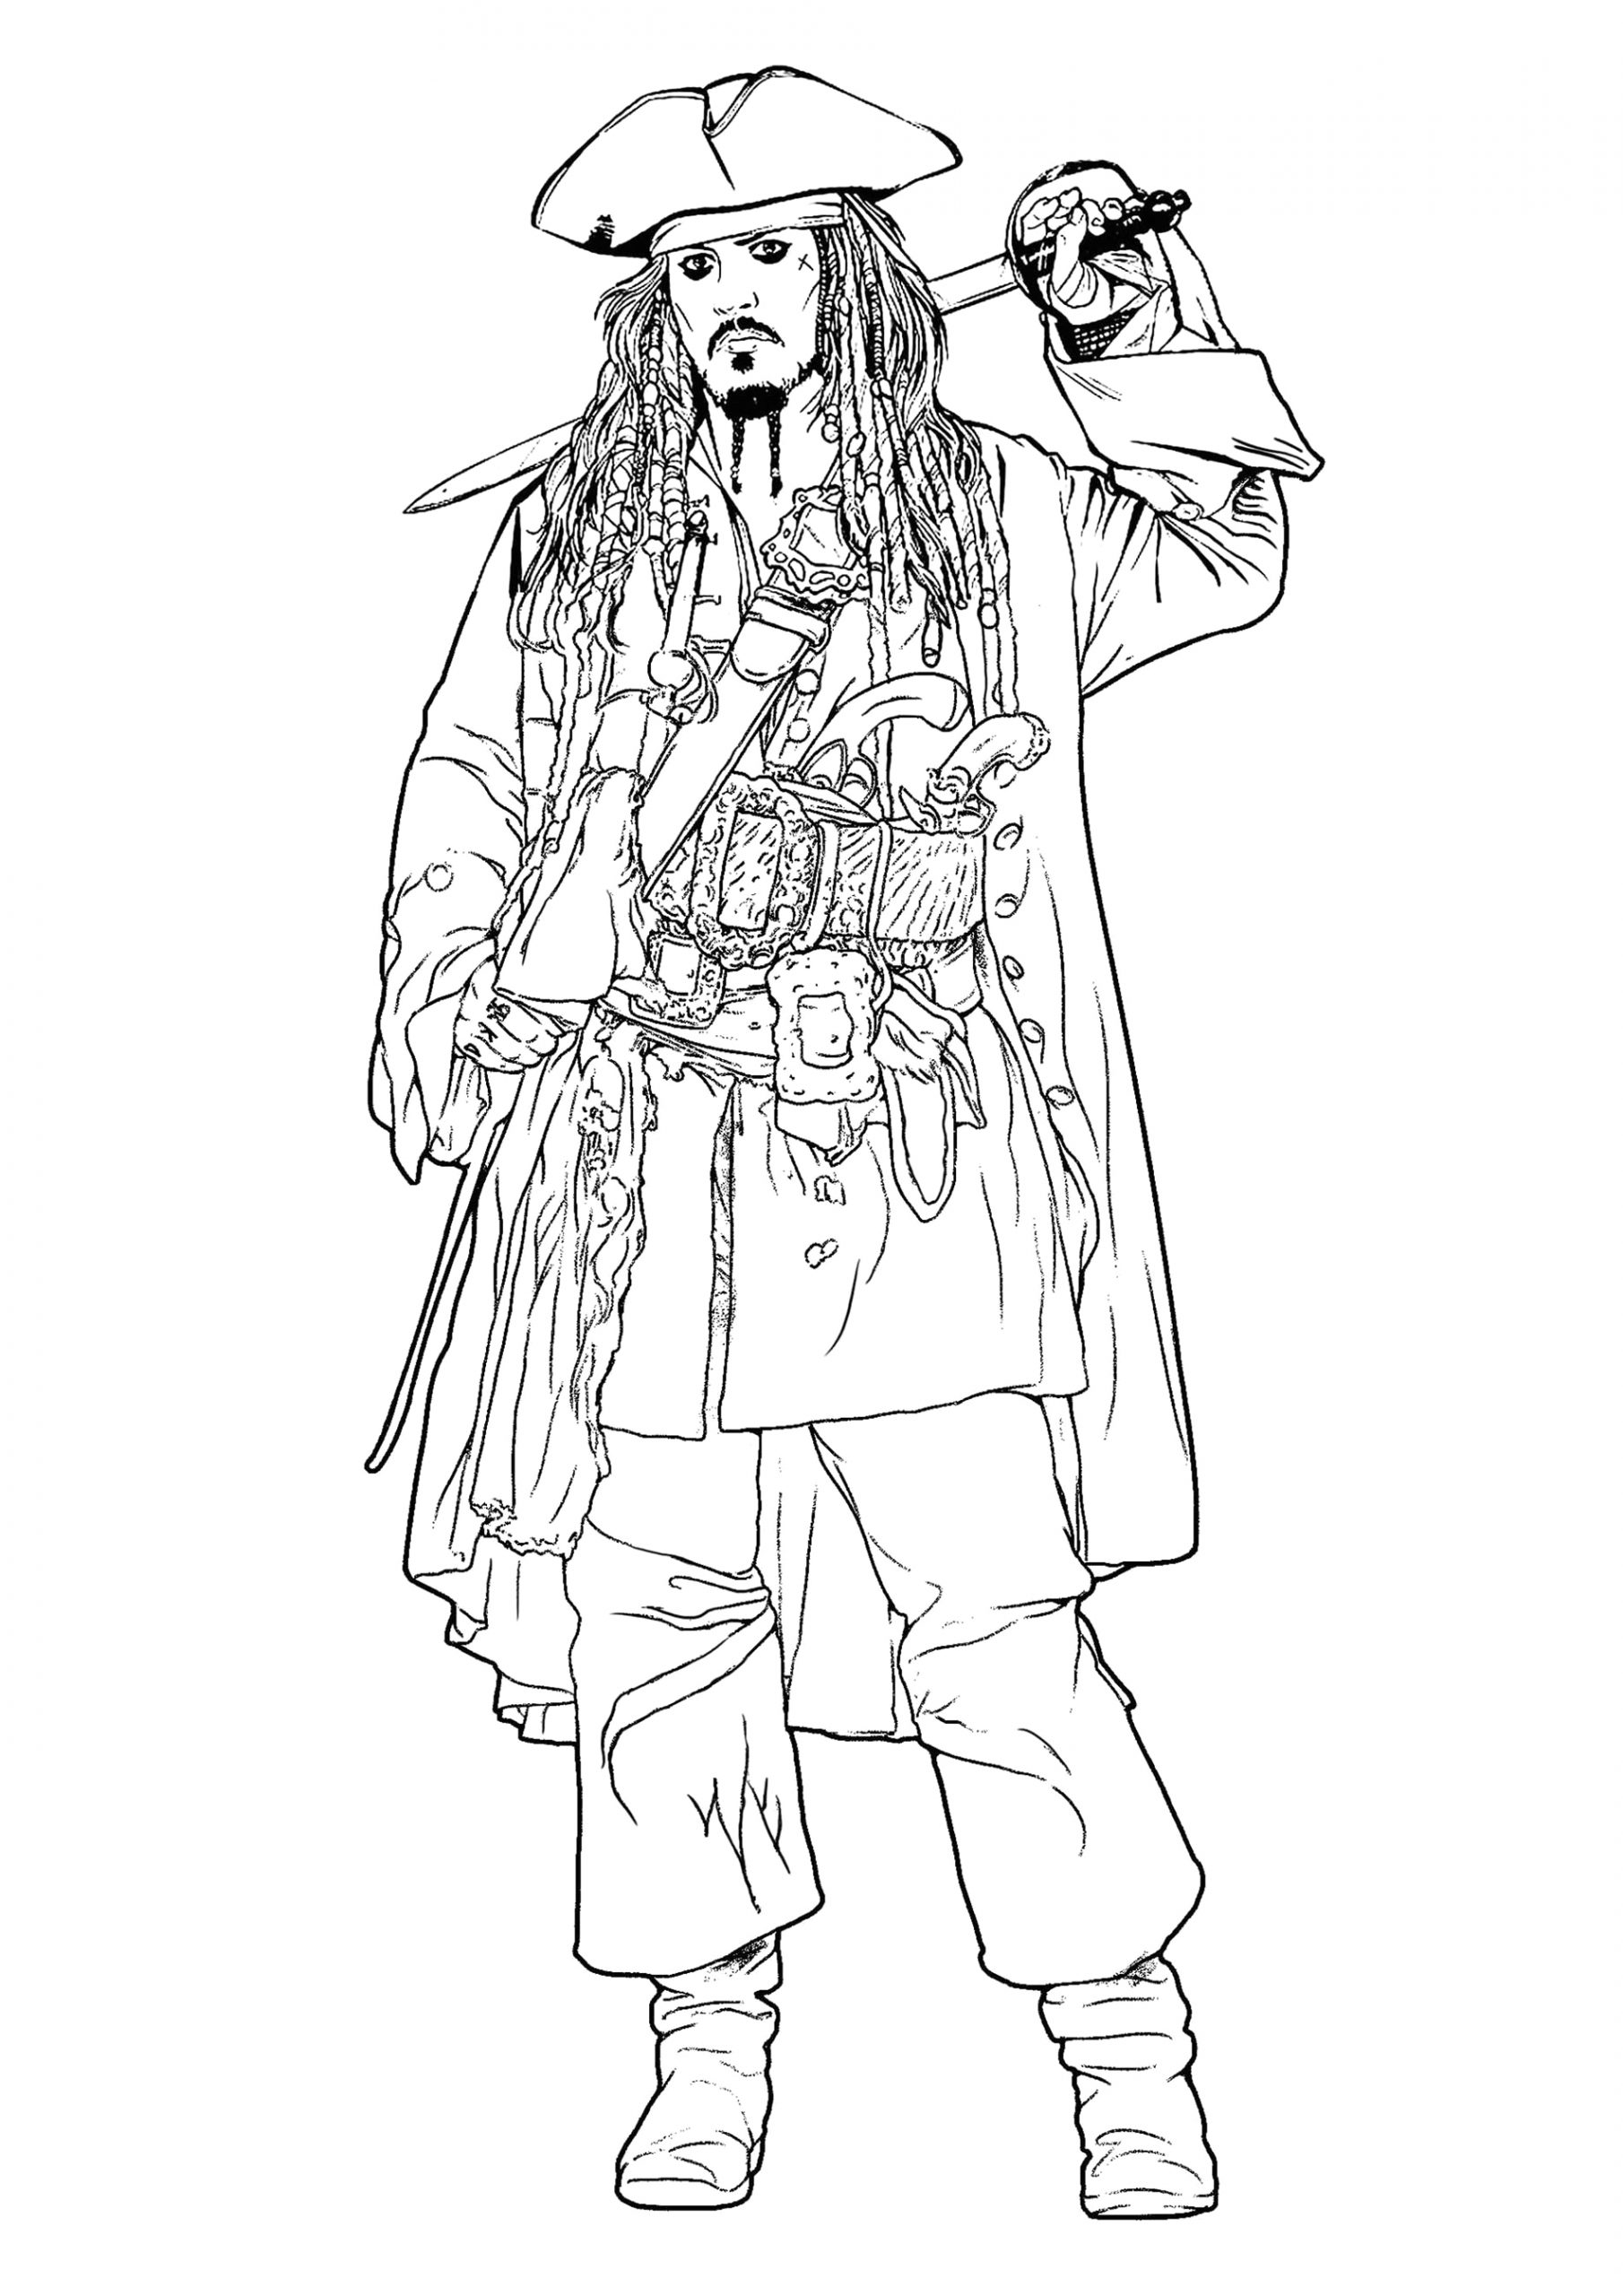 Coloring Pages Of Pirates Of the Caribbean Pirates Of the Caribbean Free to Color for Kids Pirates